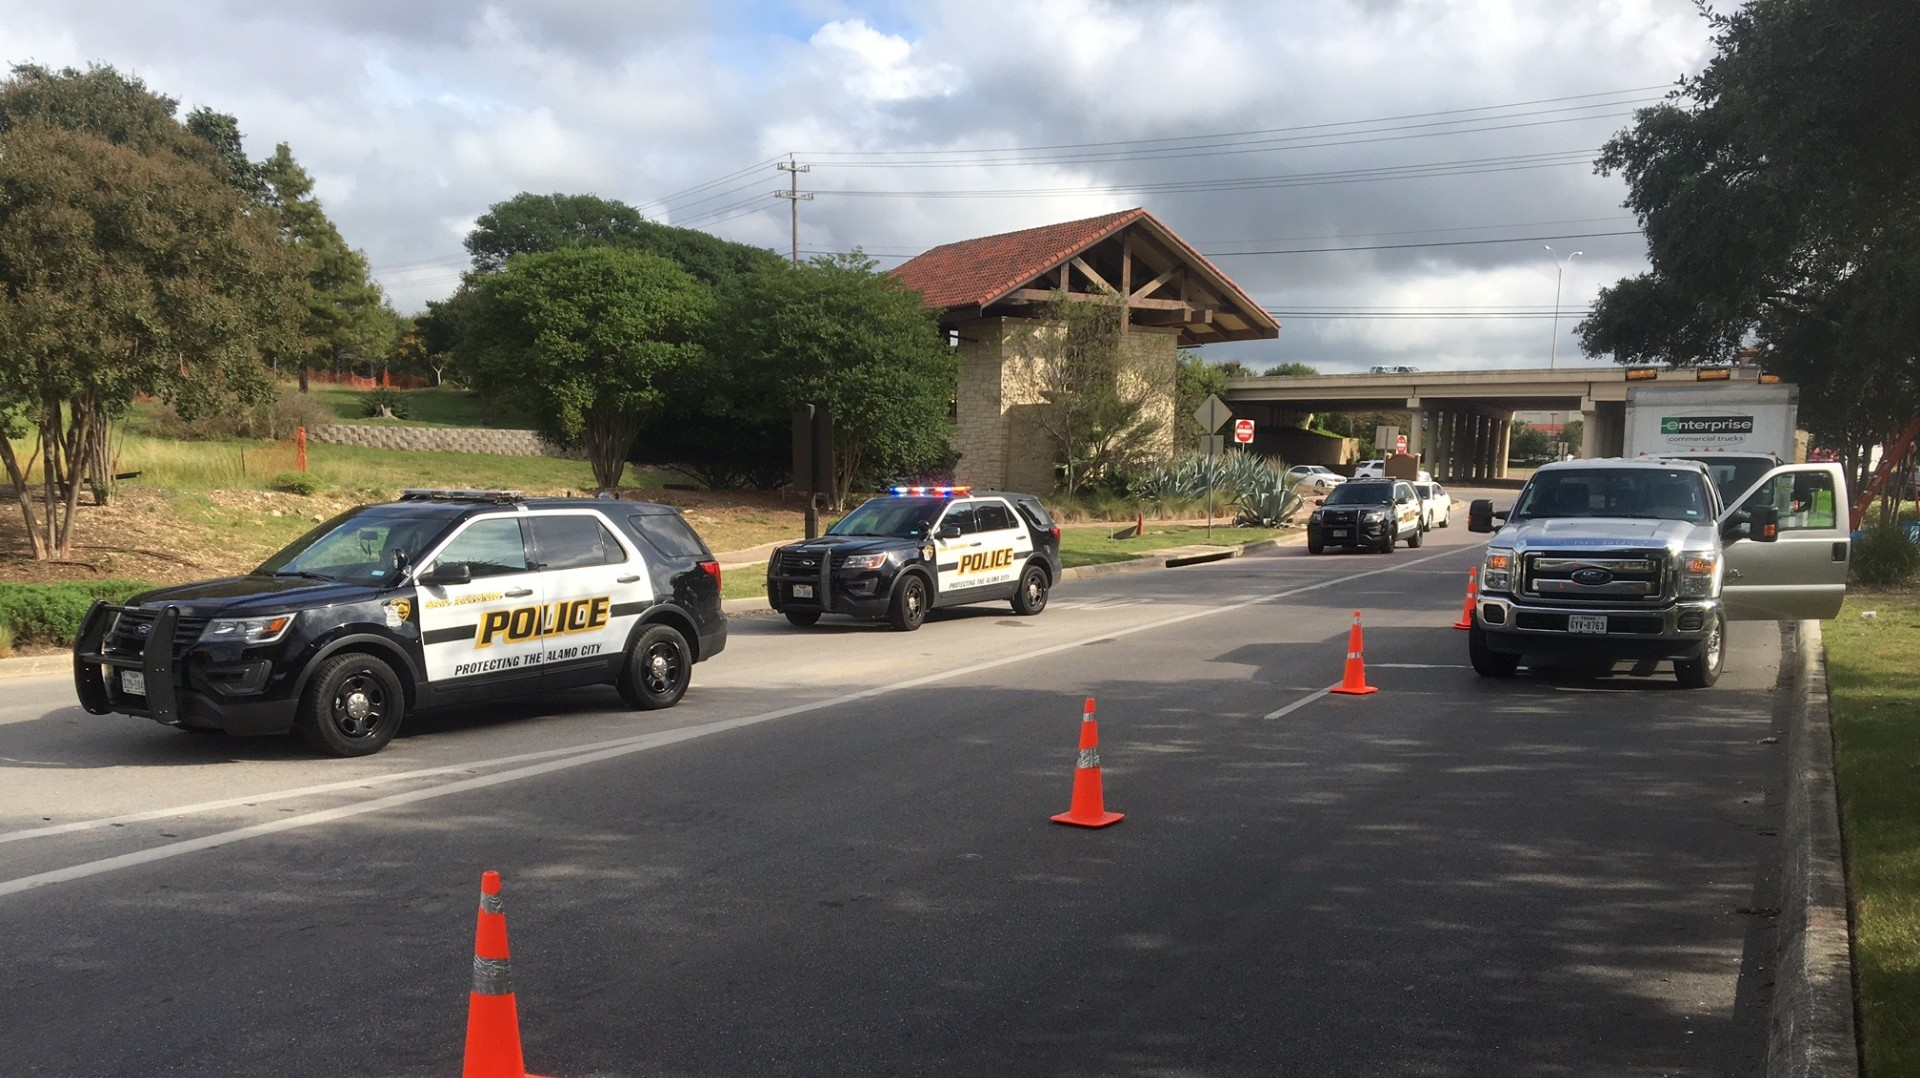 Sapd Scene At La Cantera Cleared Bad Information Prompted Mall Lockdown Kens5 Com